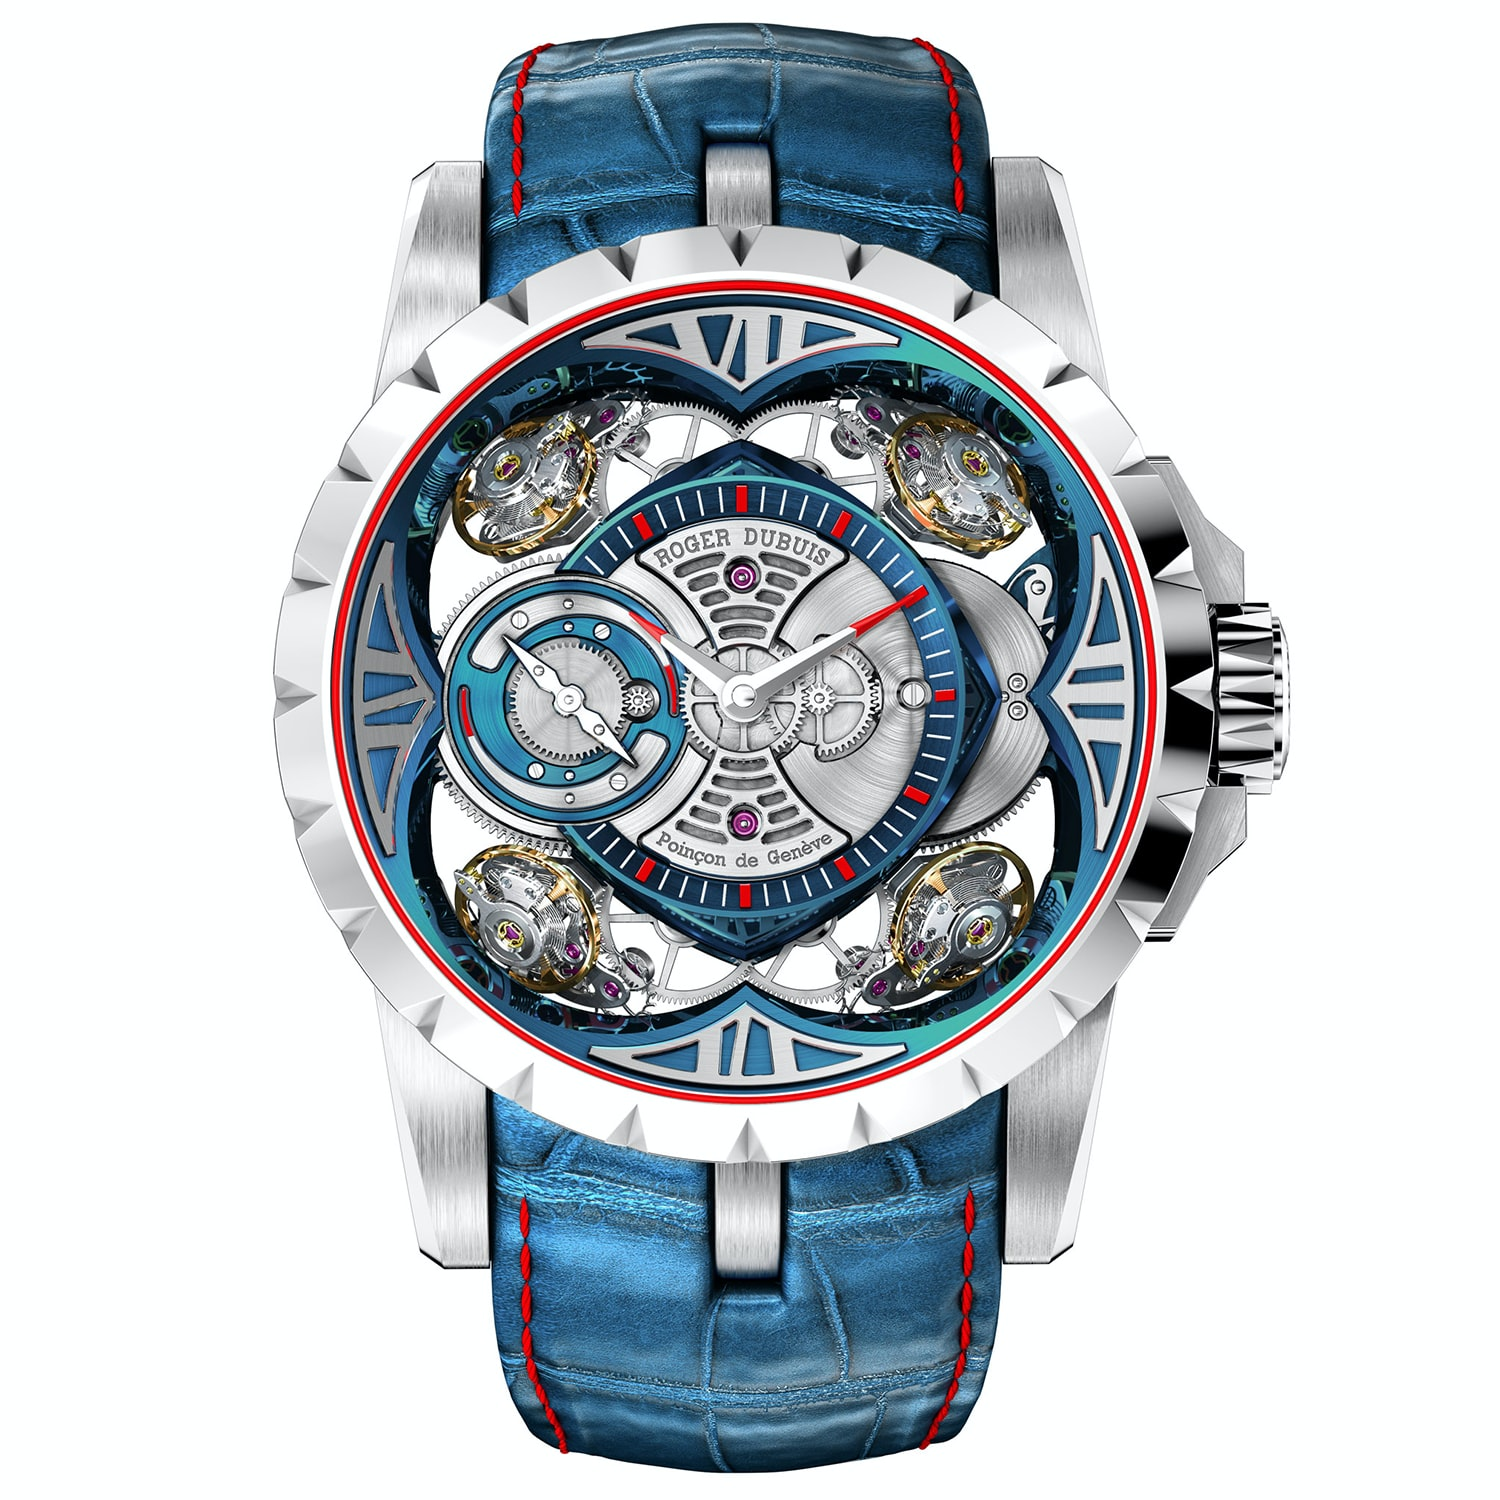 Excalibur Quatuor Cobalt MicroMelt Introducing: The Roger Dubuis Excalibur Quatuor Cobalt MicroMelt (And Two Other New Excalibur Watches) Introducing: The Roger Dubuis Excalibur Quatuor Cobalt MicroMelt (And Two Other New Excalibur Watches) 1b